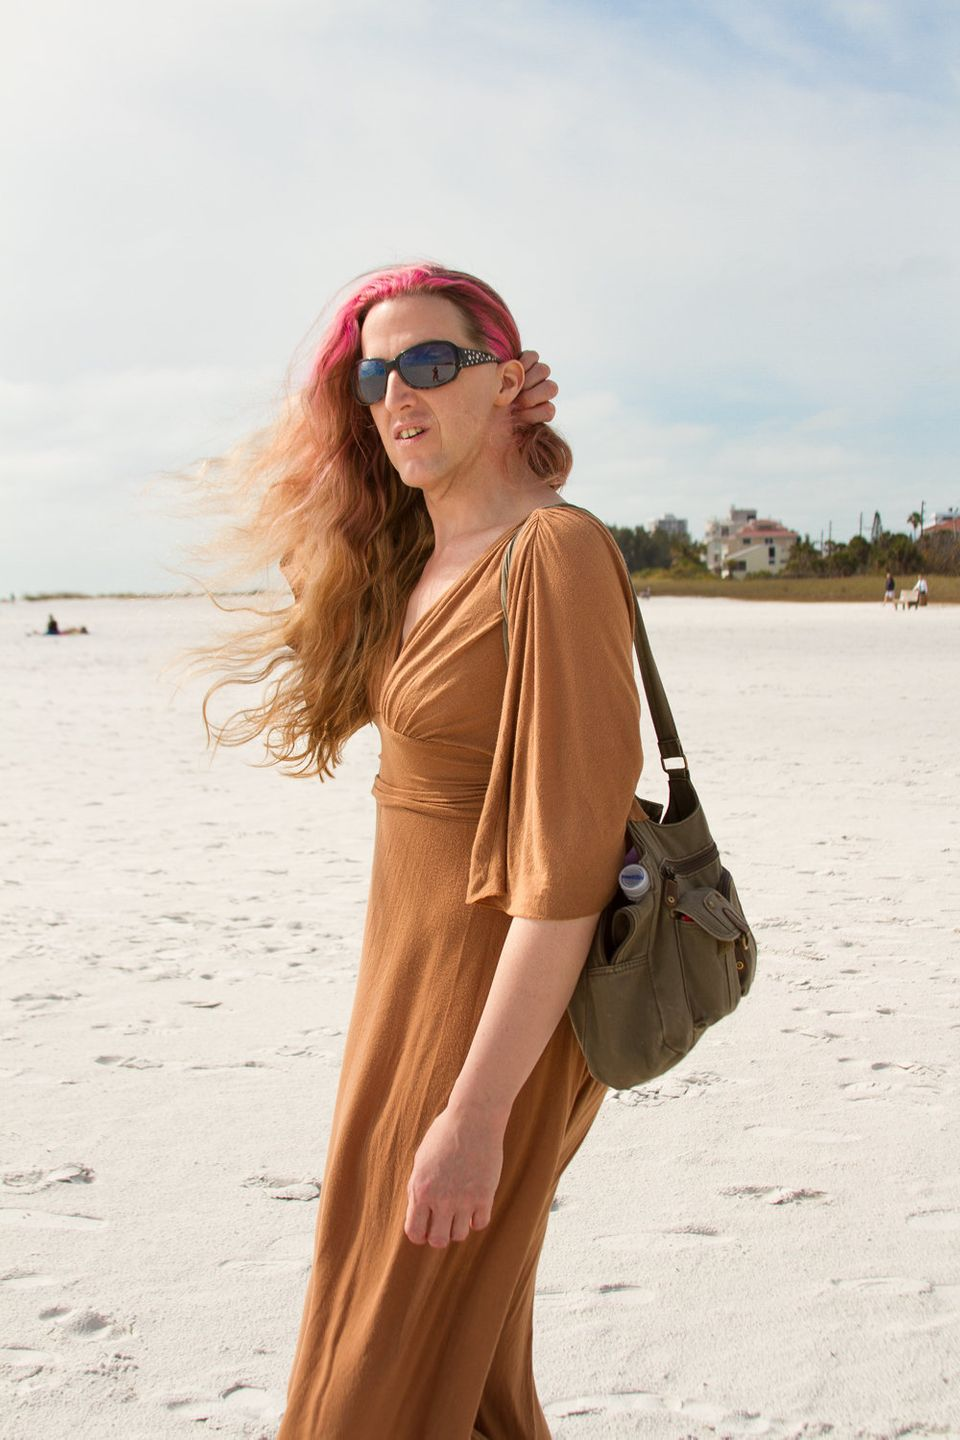 WARNING, NUDITY: Puberty At 33 – A Trans Woman's Mid-Life Coming Of